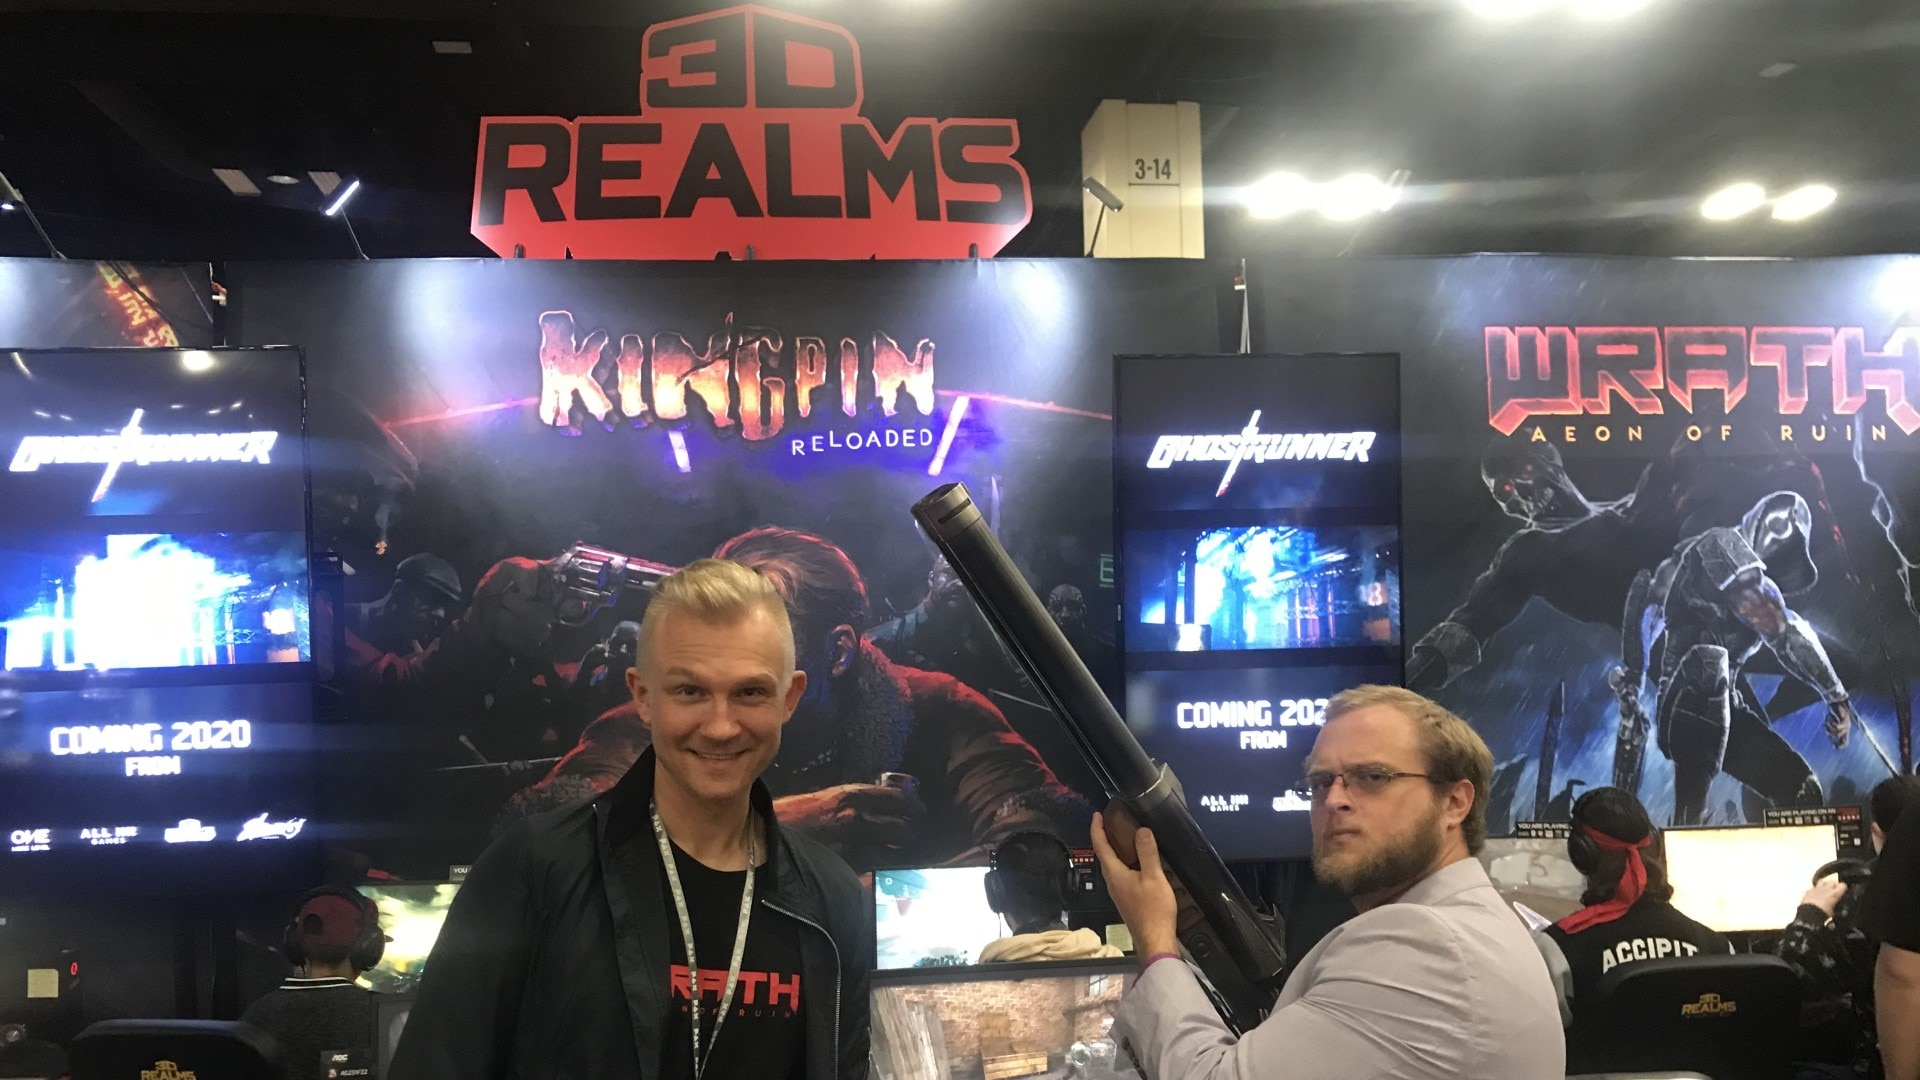 3d realms 2 - [PAX SOUTH] 3D REALMS ON GHOSTRUNNER, KINGPIN RELOADED, AND THE MODERN OLD SCHOOL